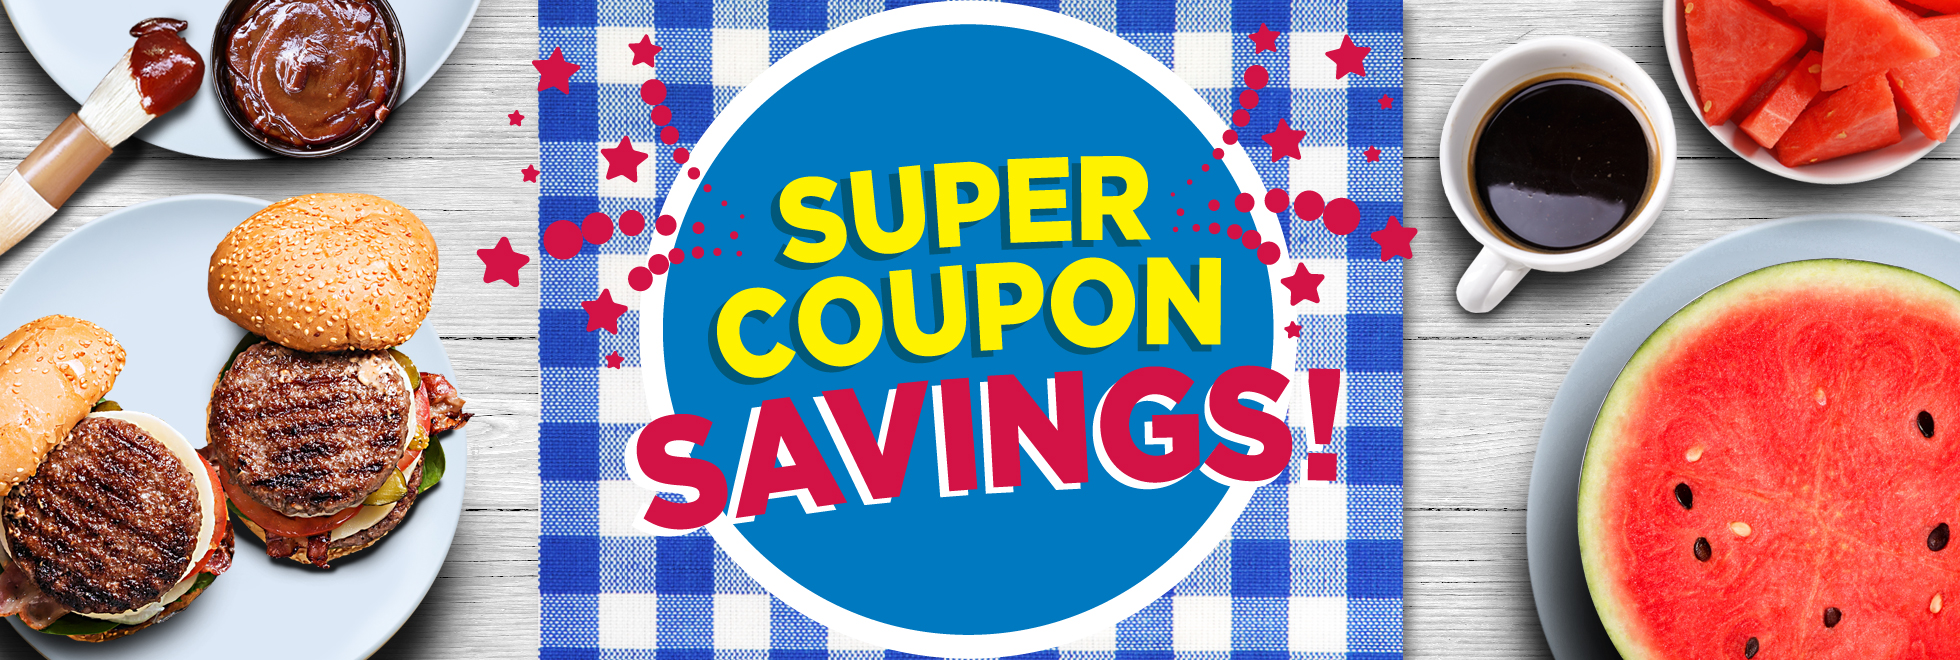 Super Coupon Savings